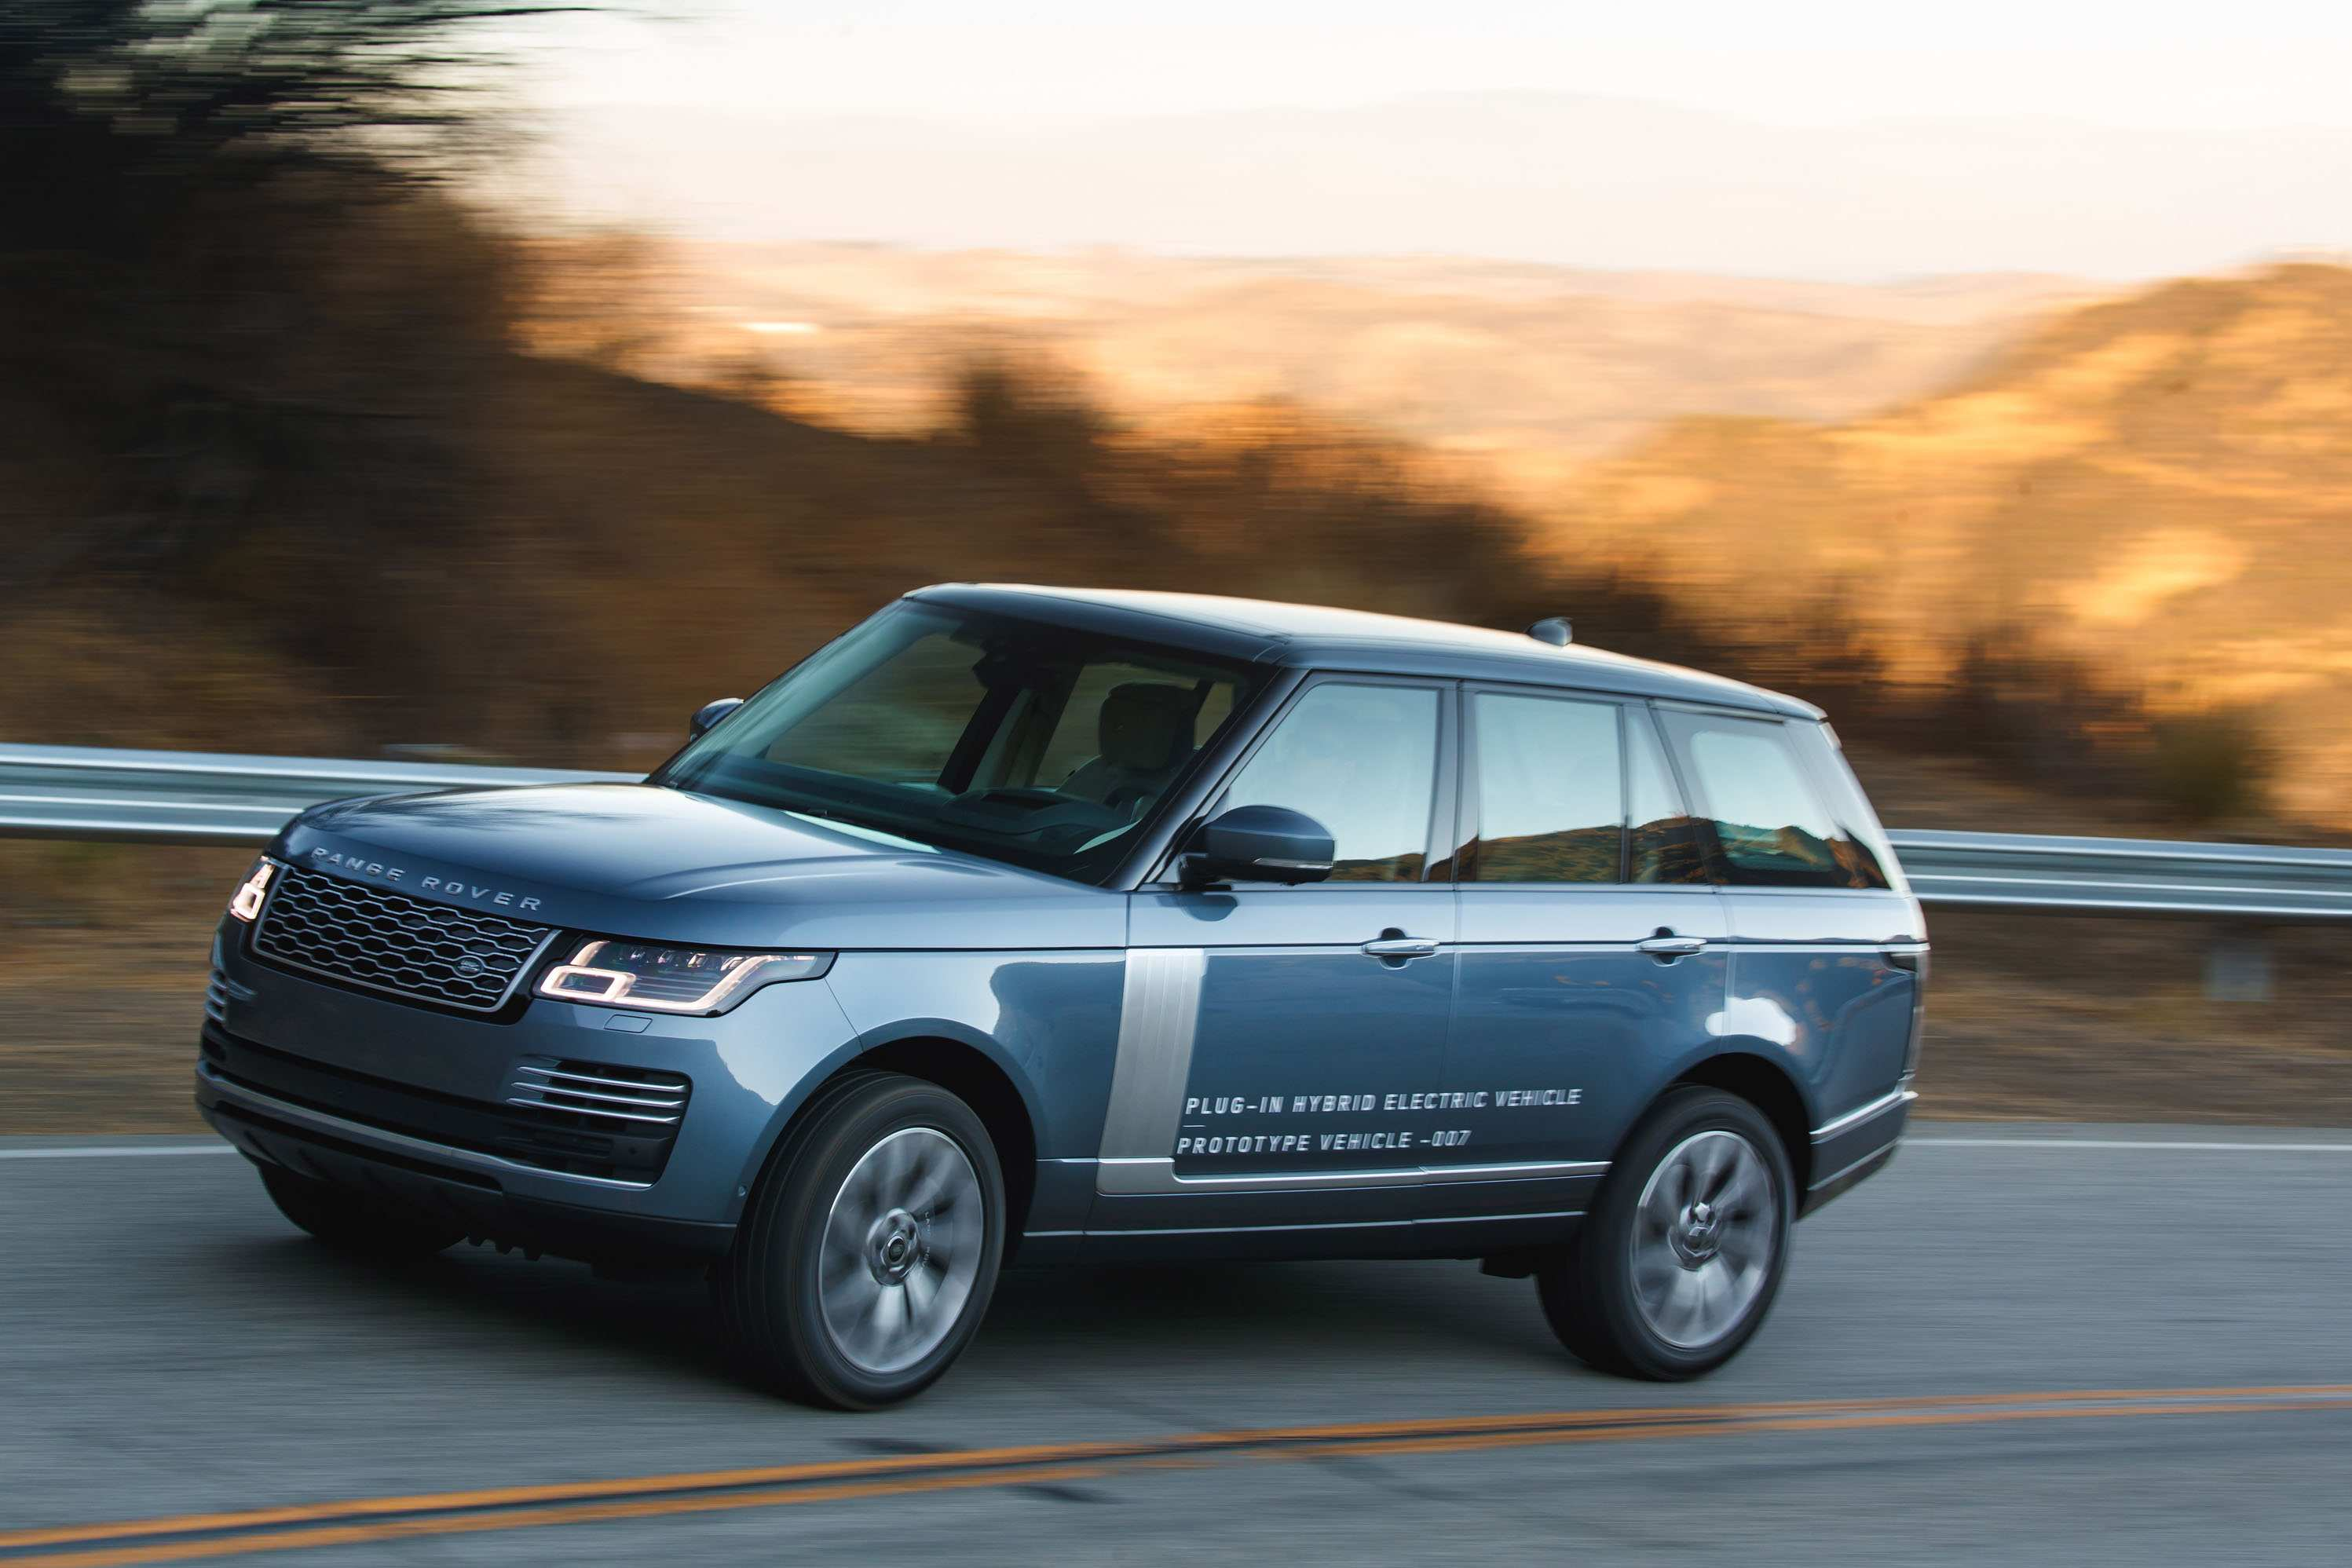 29 All New 2019 Land Rover Spy Shoot